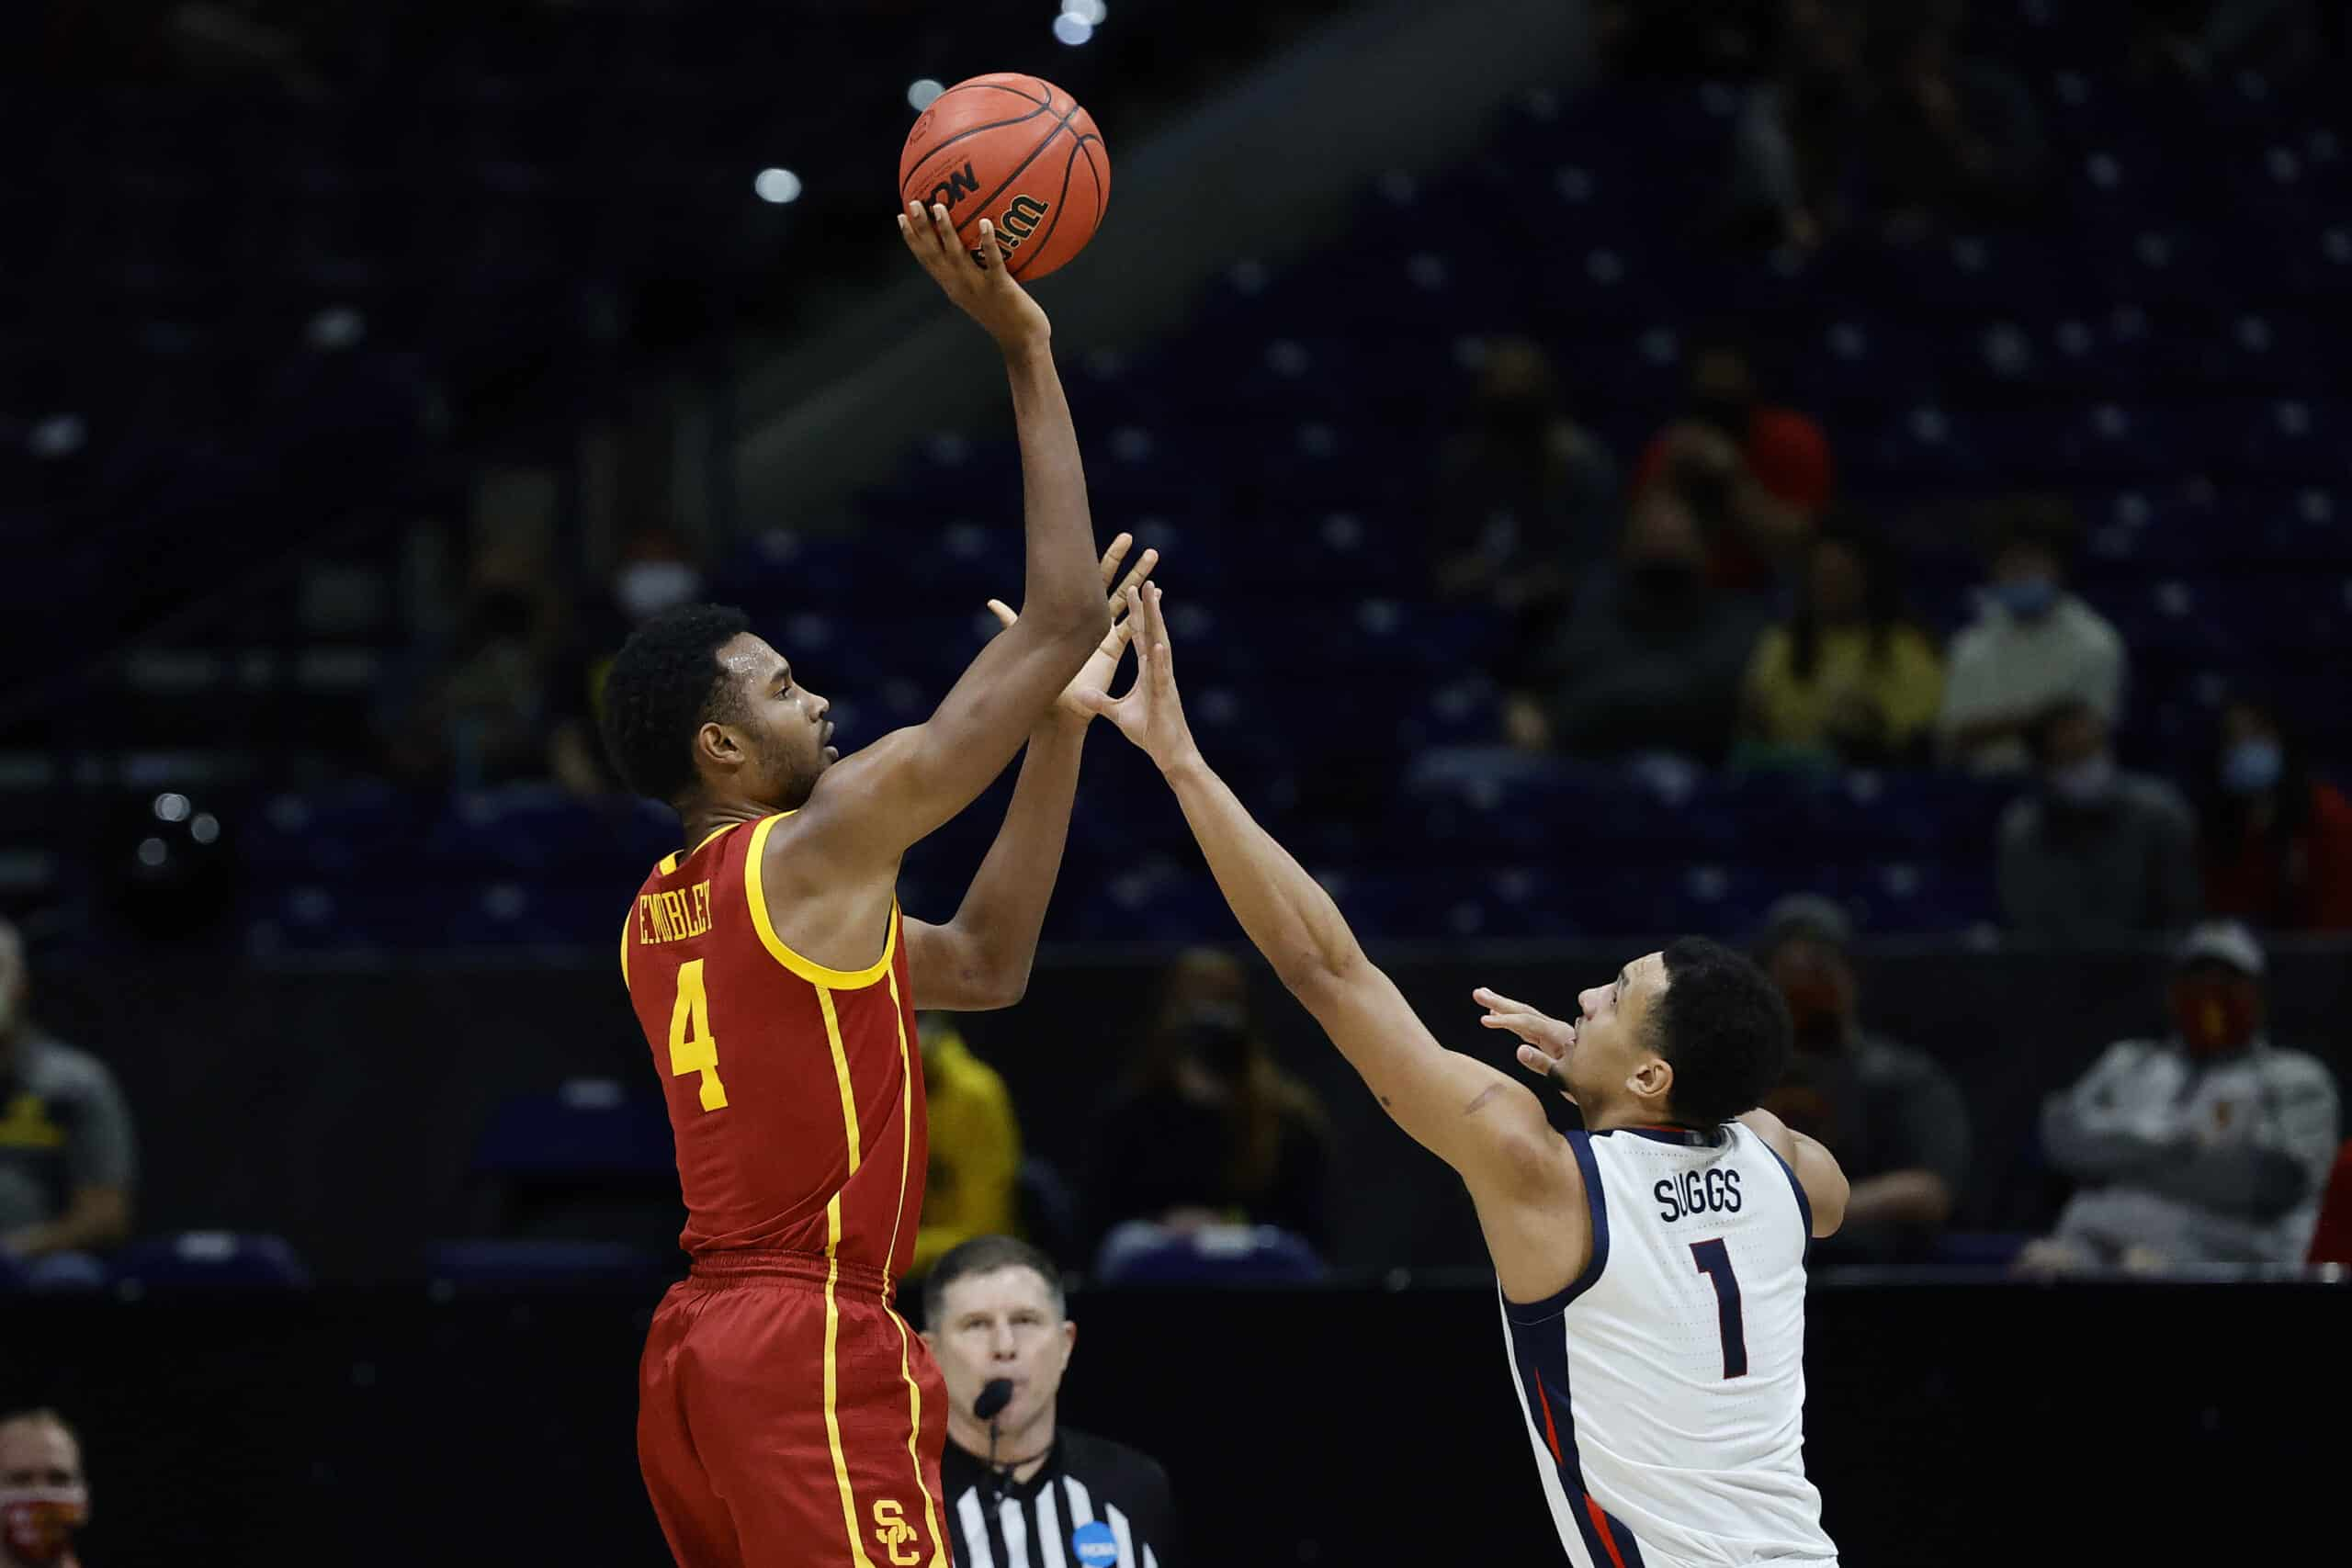 Cavaliers draft target Evan Mobley #4 of the USC Trojans shoots the ball against Jalen Suggs #1 of the Gonzaga Bulldogs during the second half in the Elite Eight round game of the 2021 NCAA Men's Basketball Tournament at Lucas Oil Stadium on March 30, 2021 in Indianapolis, Indiana.